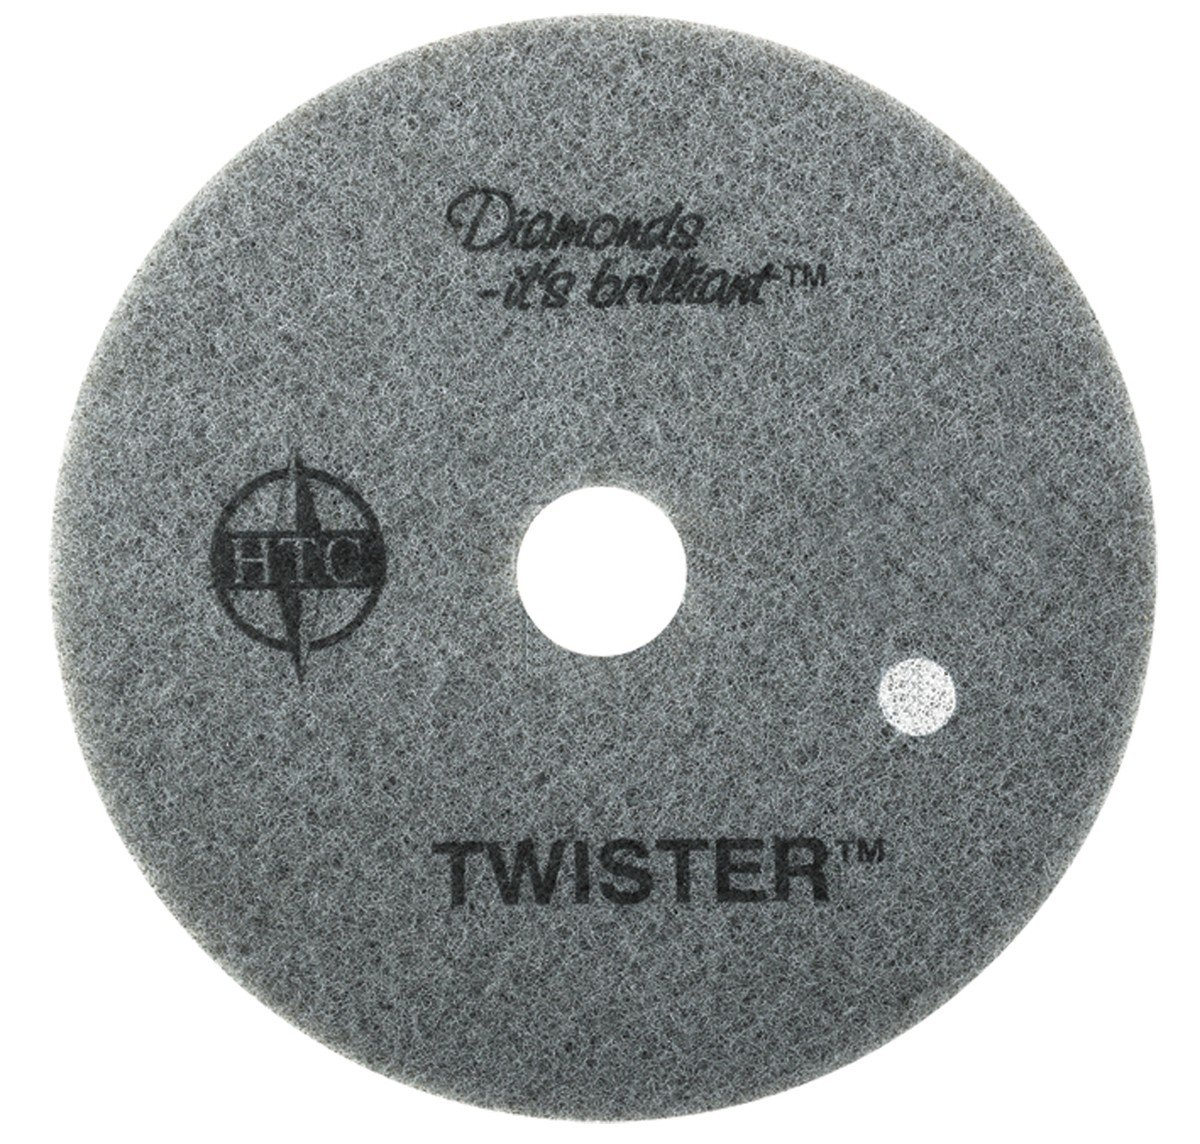 Twister™ Diamond Cleaning System 20'' White Floor Pad - 800 Grit - 2 per case